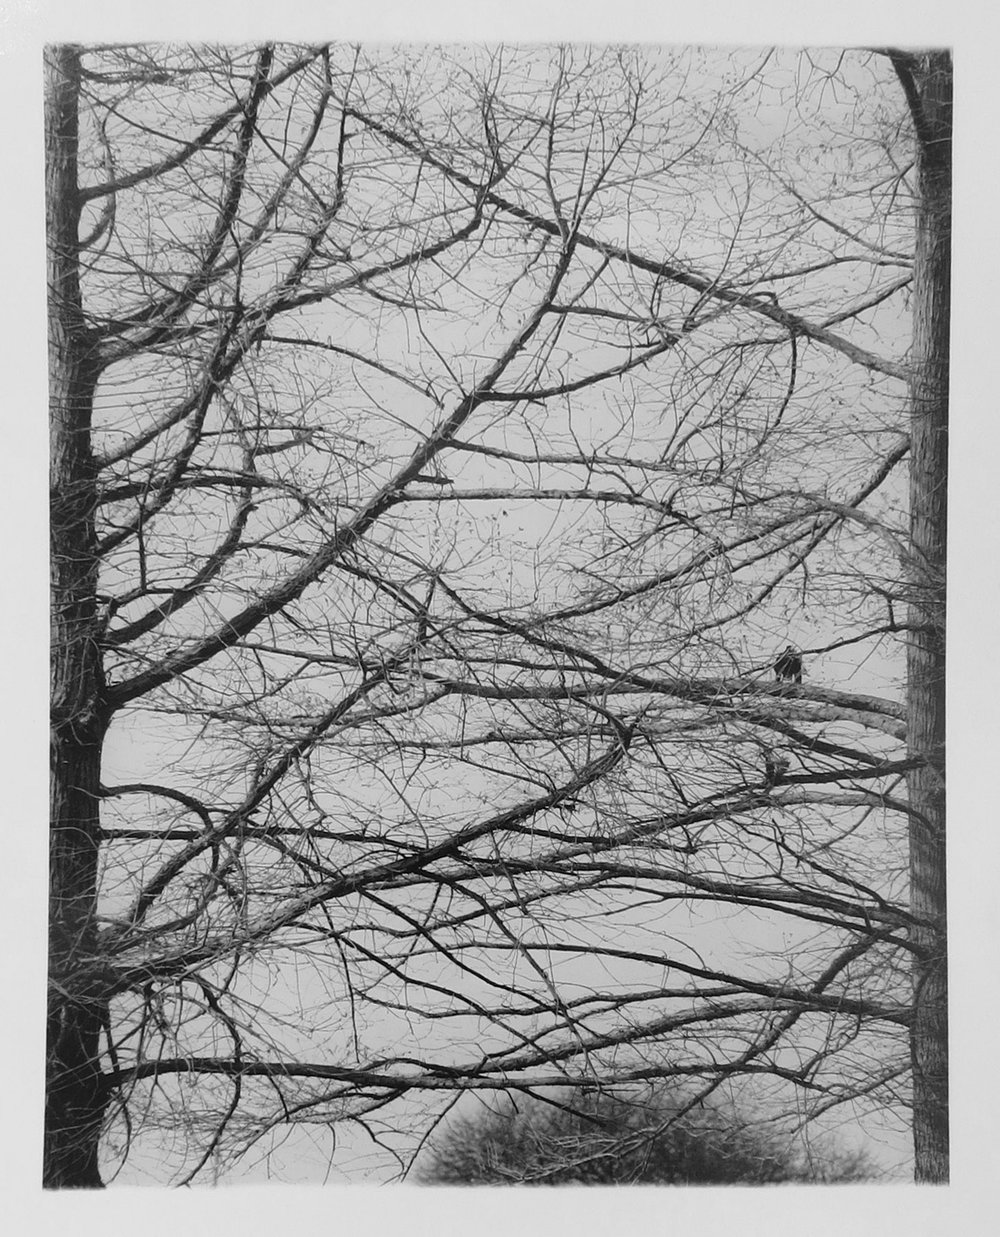 6. Richard Woldendorp, 'Branching Out, South West WA', BW85, taken and printed in 1967, Vintage Print